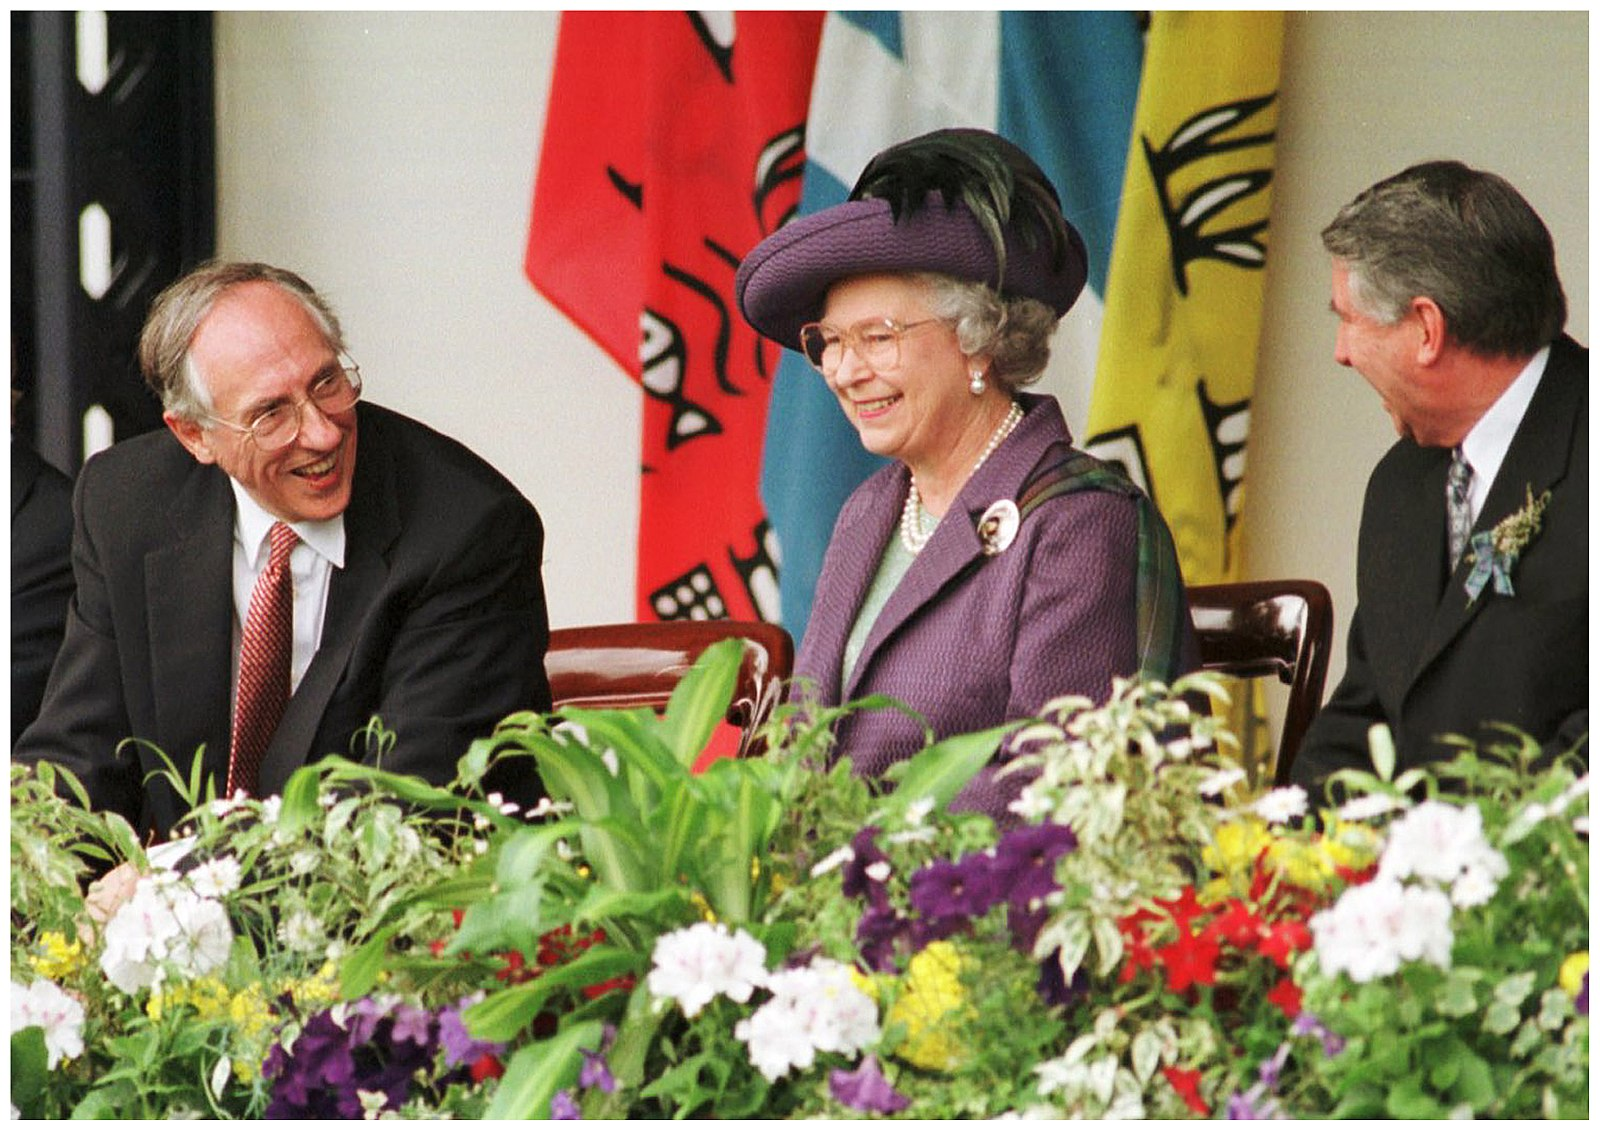 The Queen attends the opening of the Scottish Parliament in Edinburgh, 1999. Image:    Wikimedia